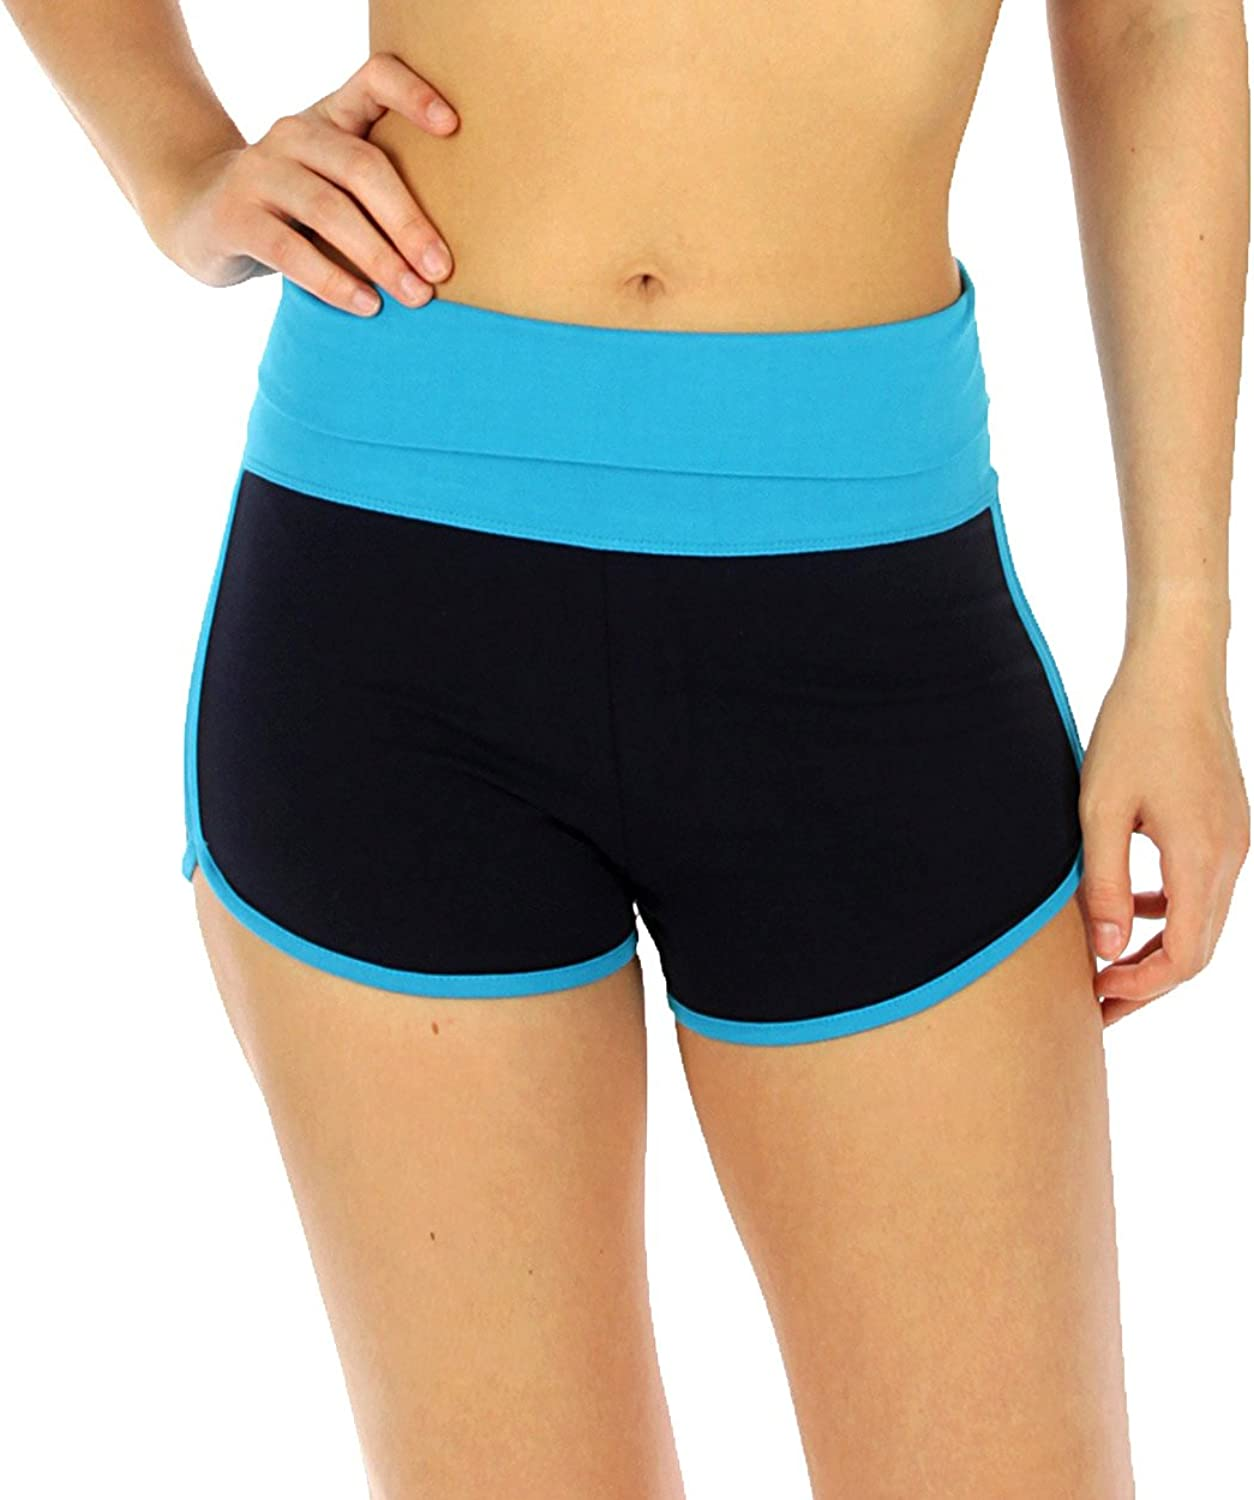 SERENITA Cotton Active Workout Yoga Shorts for Women, Fold Over Waist Athletic Running Pants